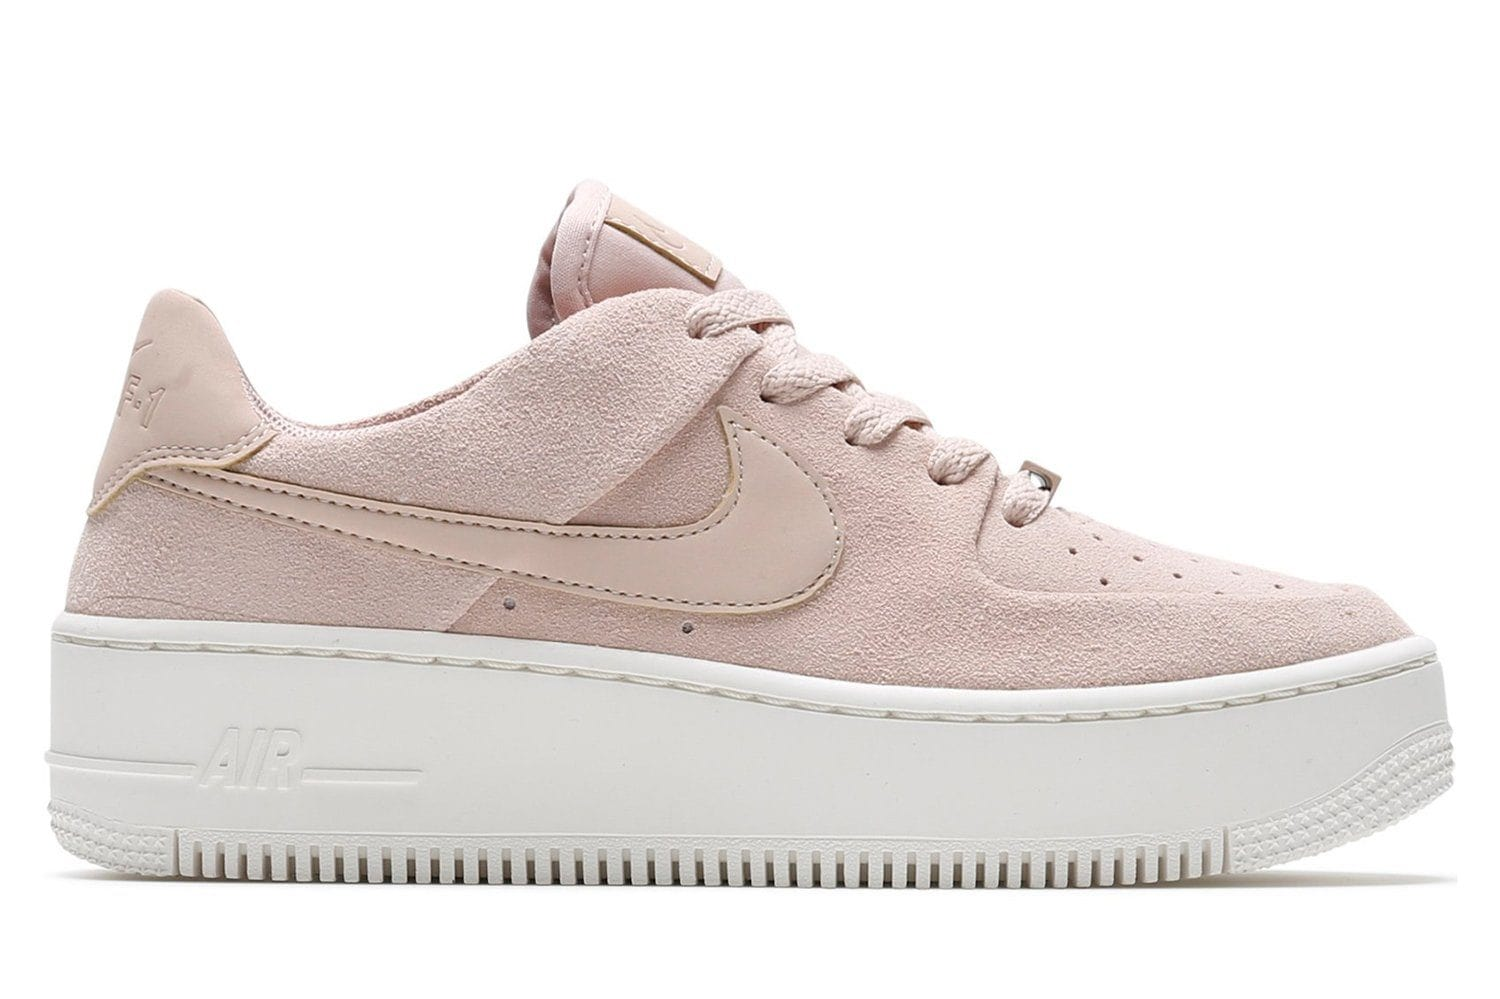 5a4f04ee575 NIKE AIR FORCE 1 SAGE LOW - AR5339-201